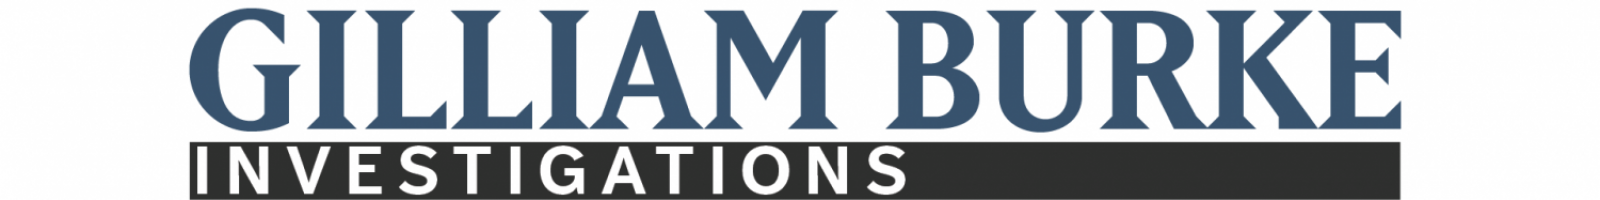 Edmonton Private Investigators - Gilliam Burke Investigations Logo